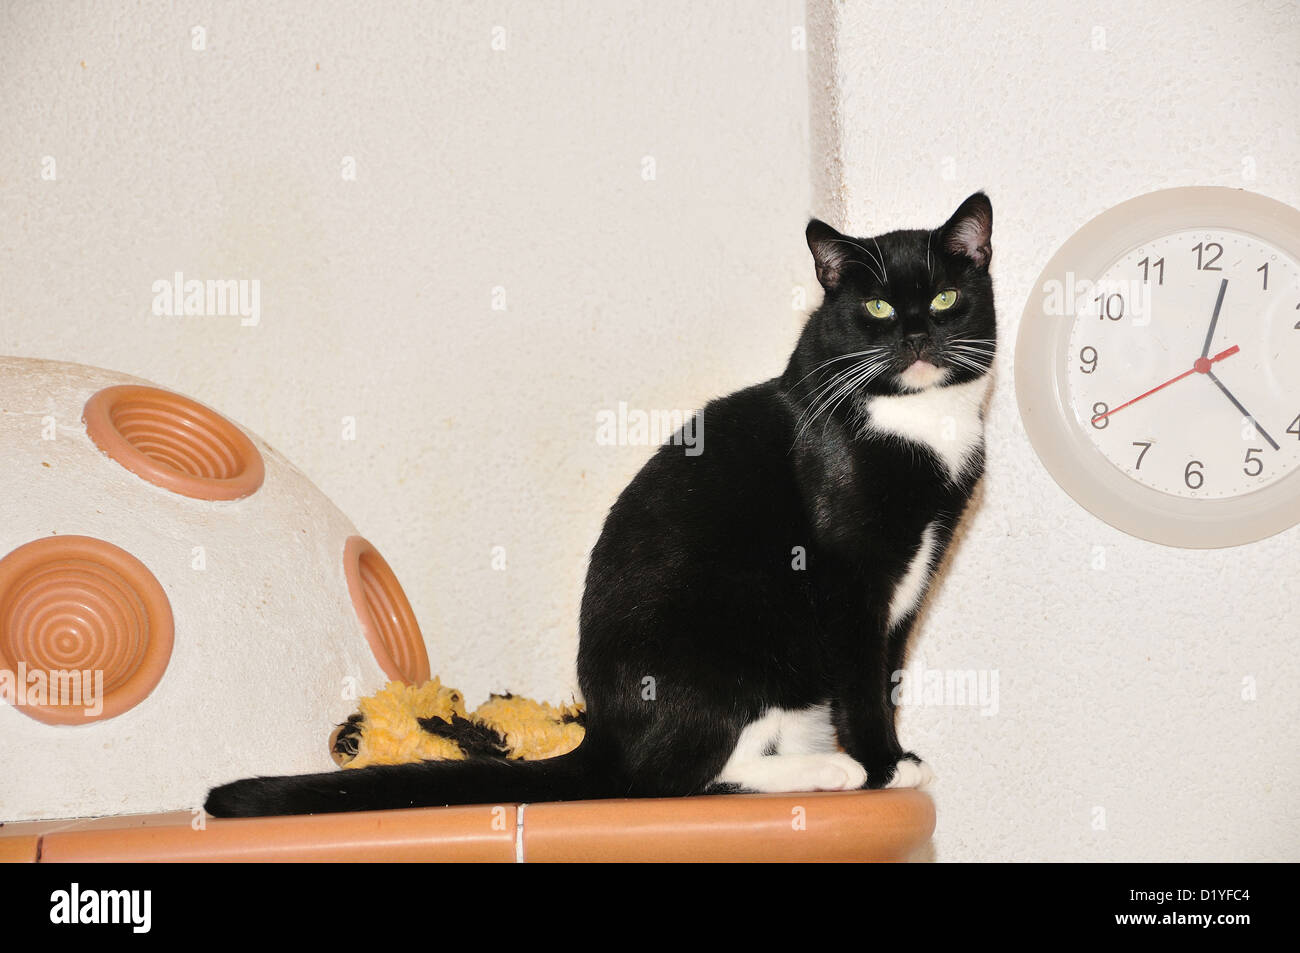 Domestic Cat. Black-and-white adult on a tiled stove - Stock Image